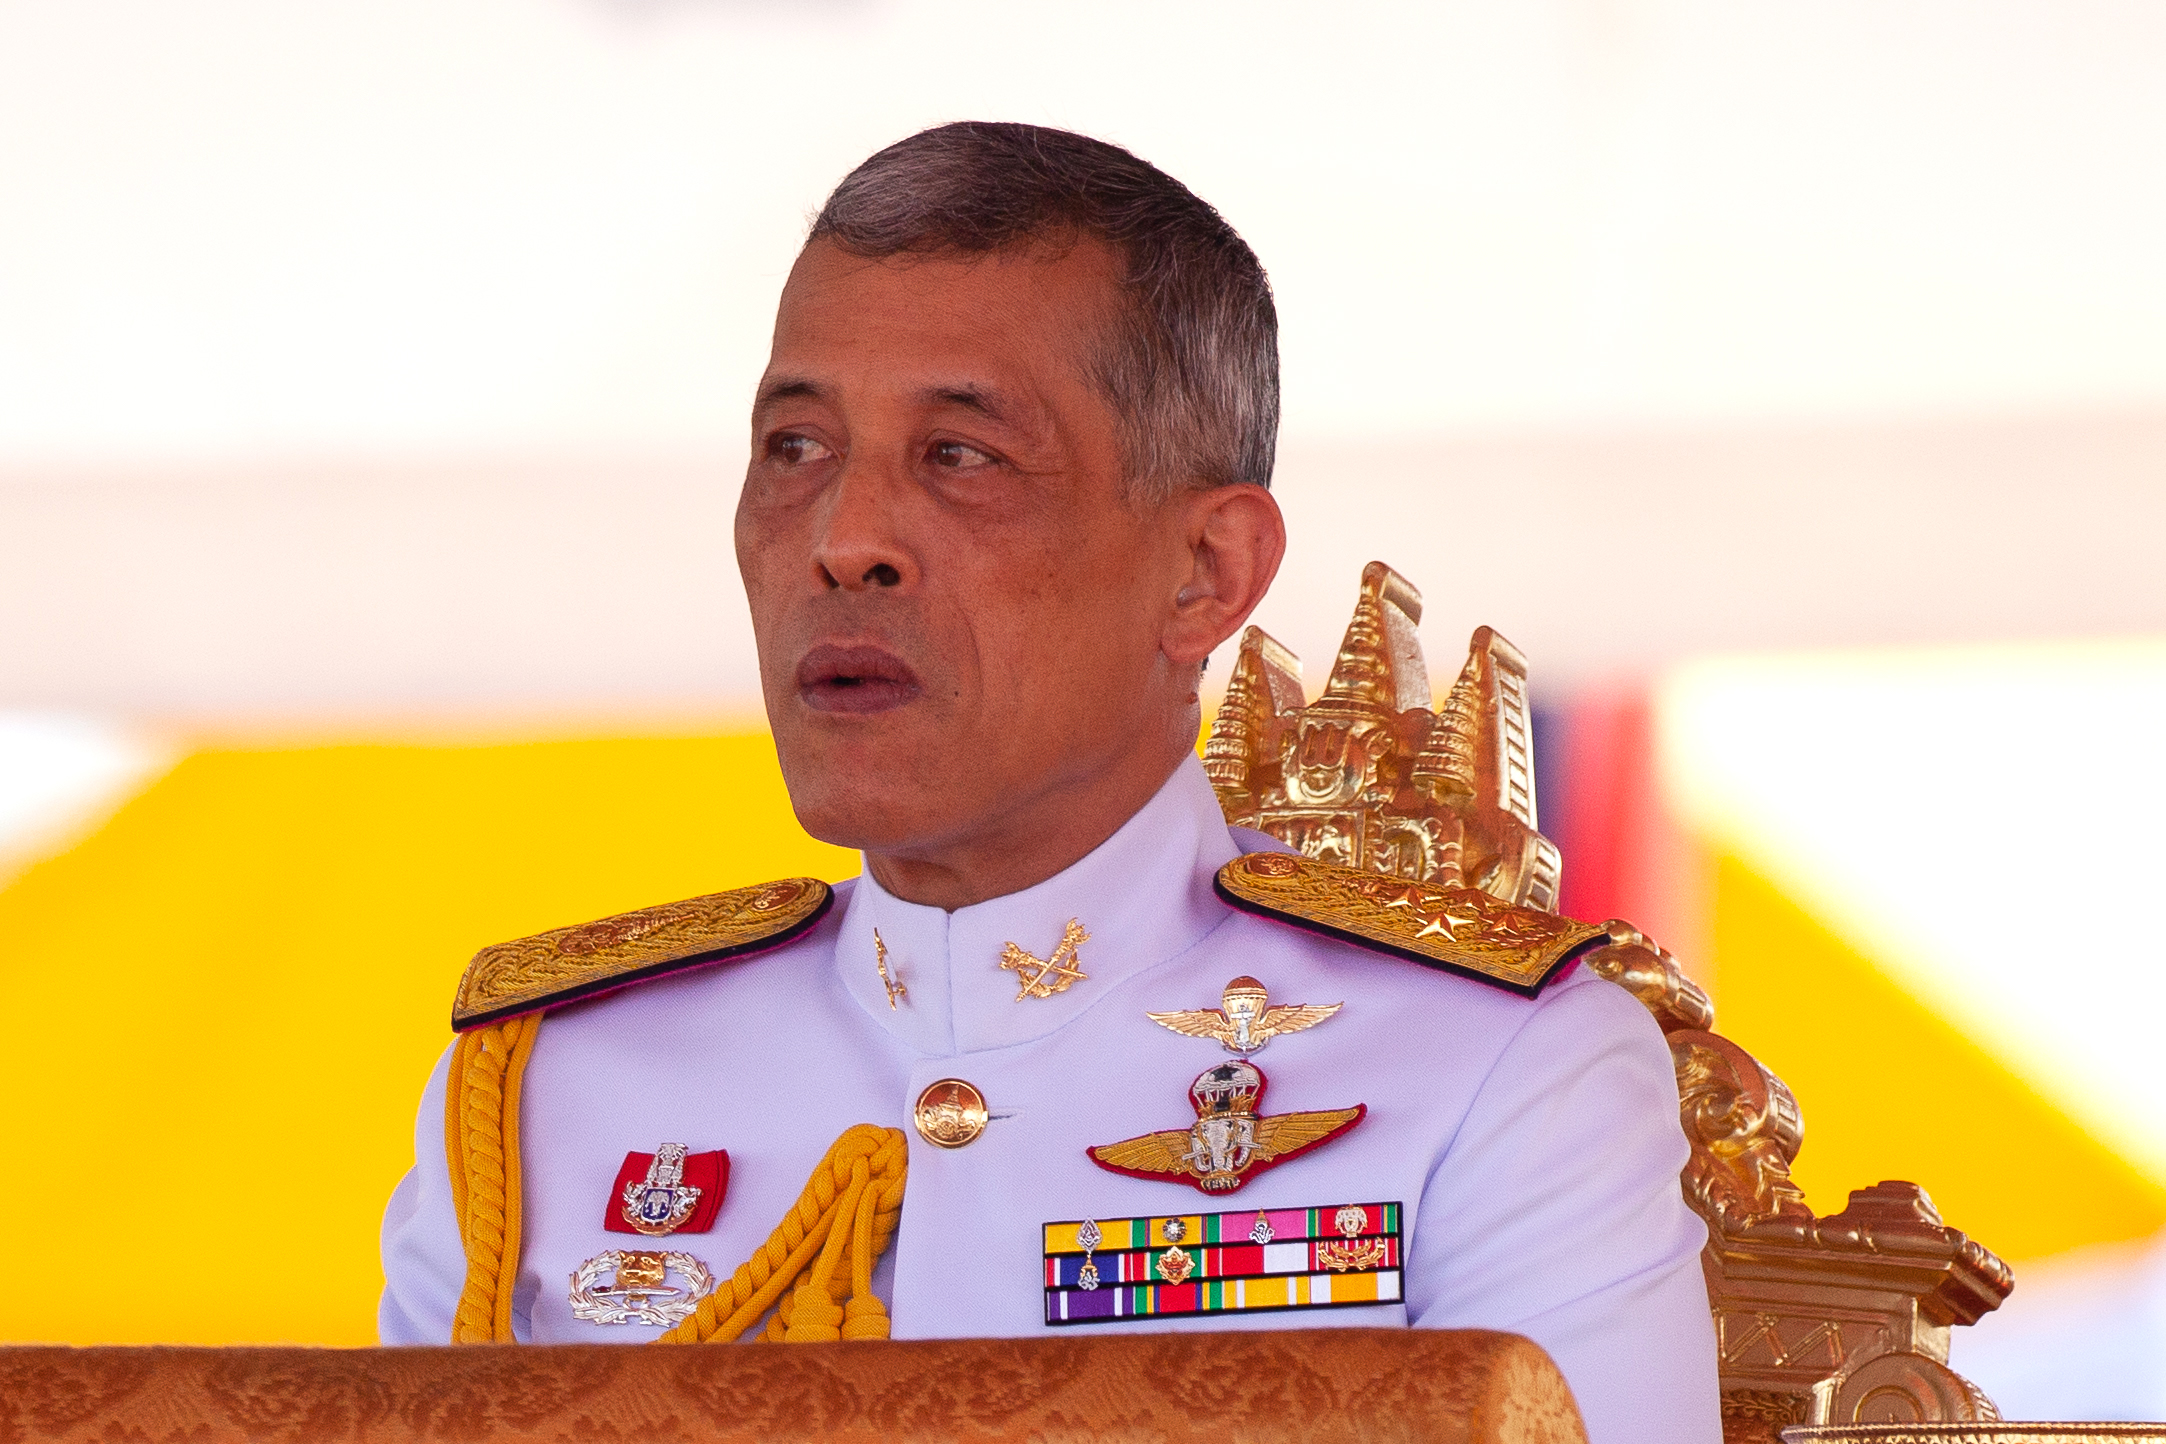 Thai King Maha Vajiralongkorn presides over the annual royal plowing ceremony outside Bangkok's royal palace on May 14, 2018.